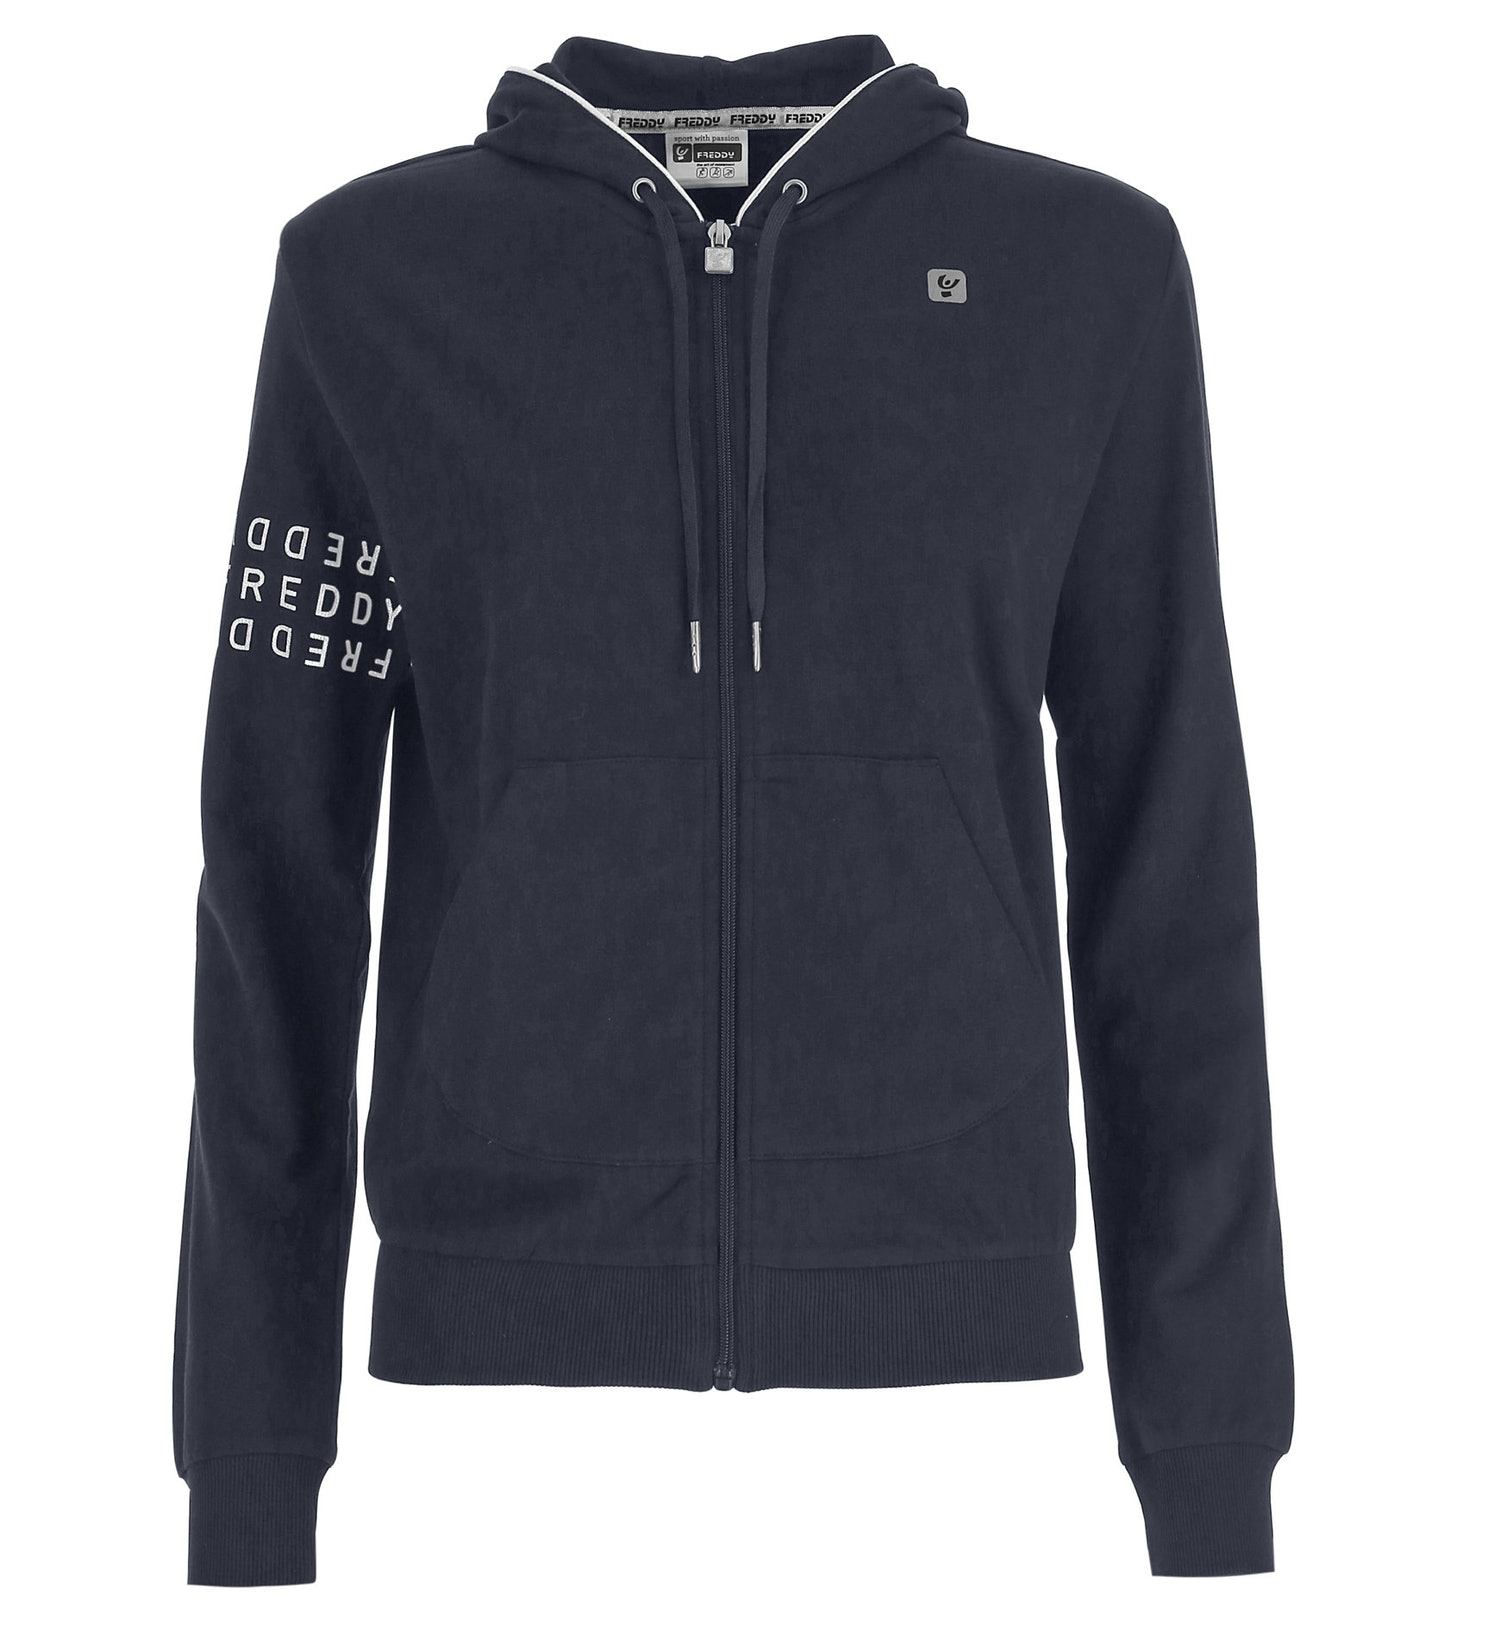 Freddy Light French Terry - giacca sportiva con zip - donna